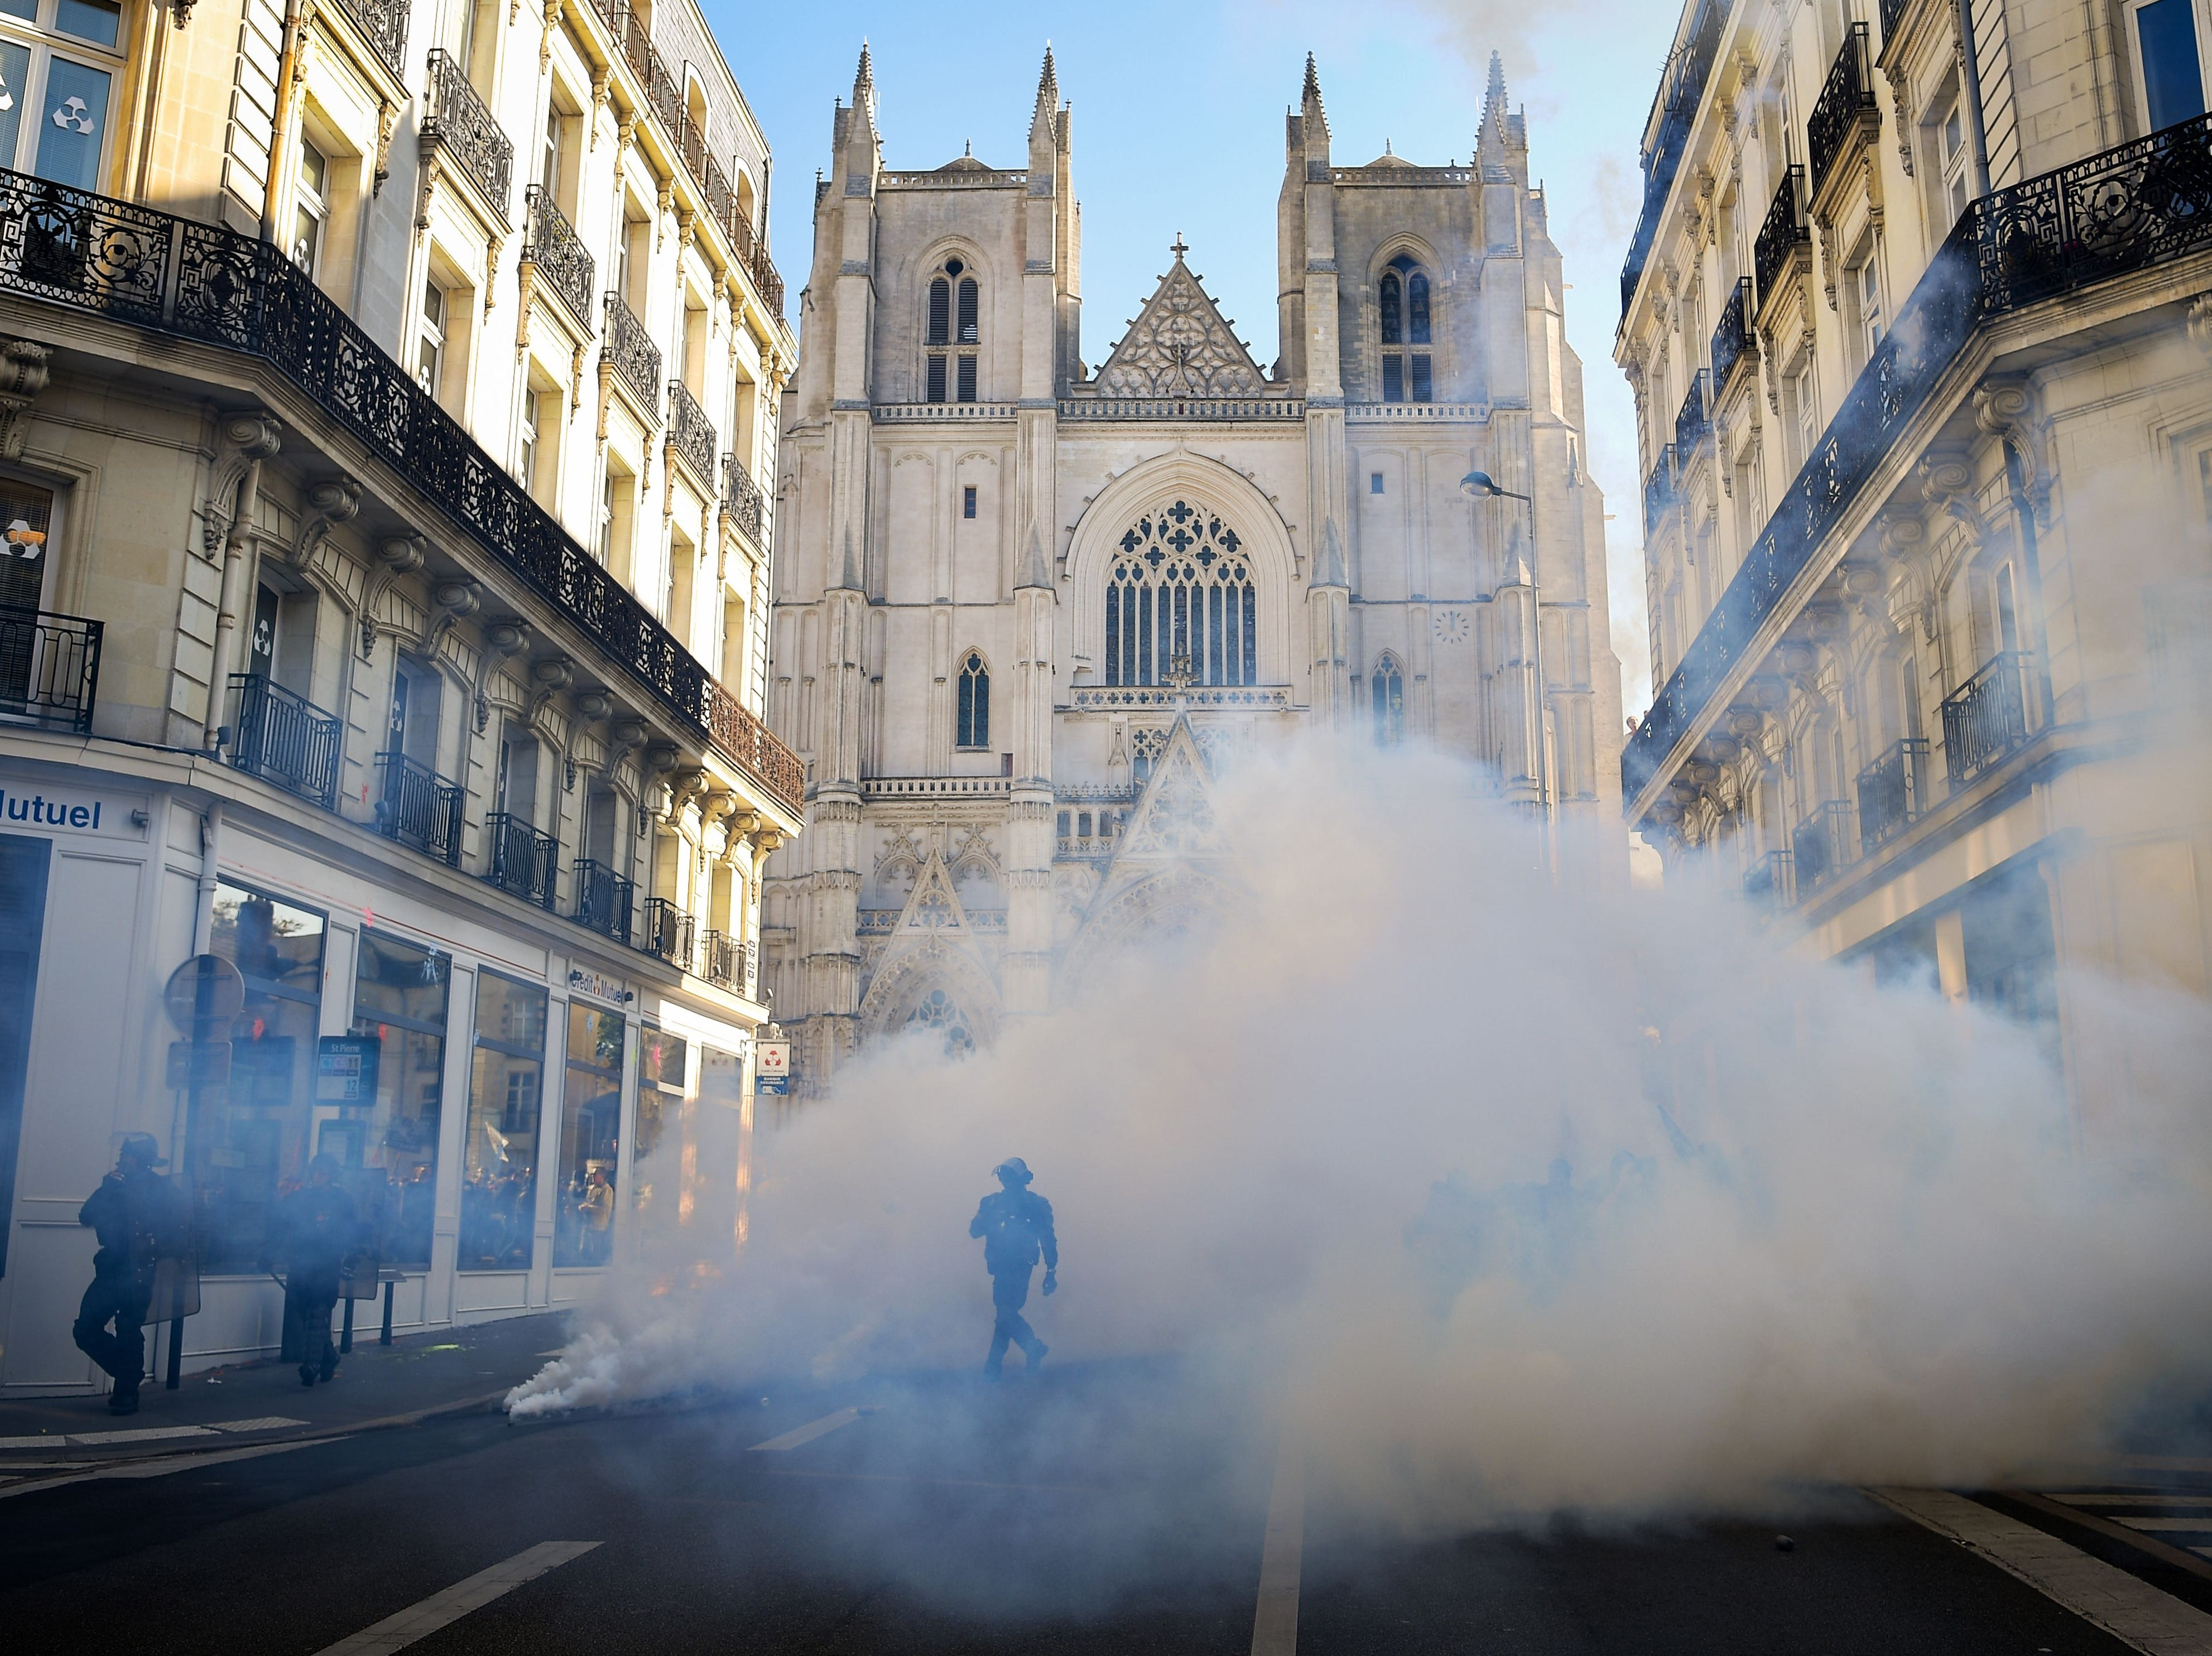 Anti-riot police charge protesters Tuesday during a one-day nationwide strike over President Emmanuel Macron's policies in Nantes, France.